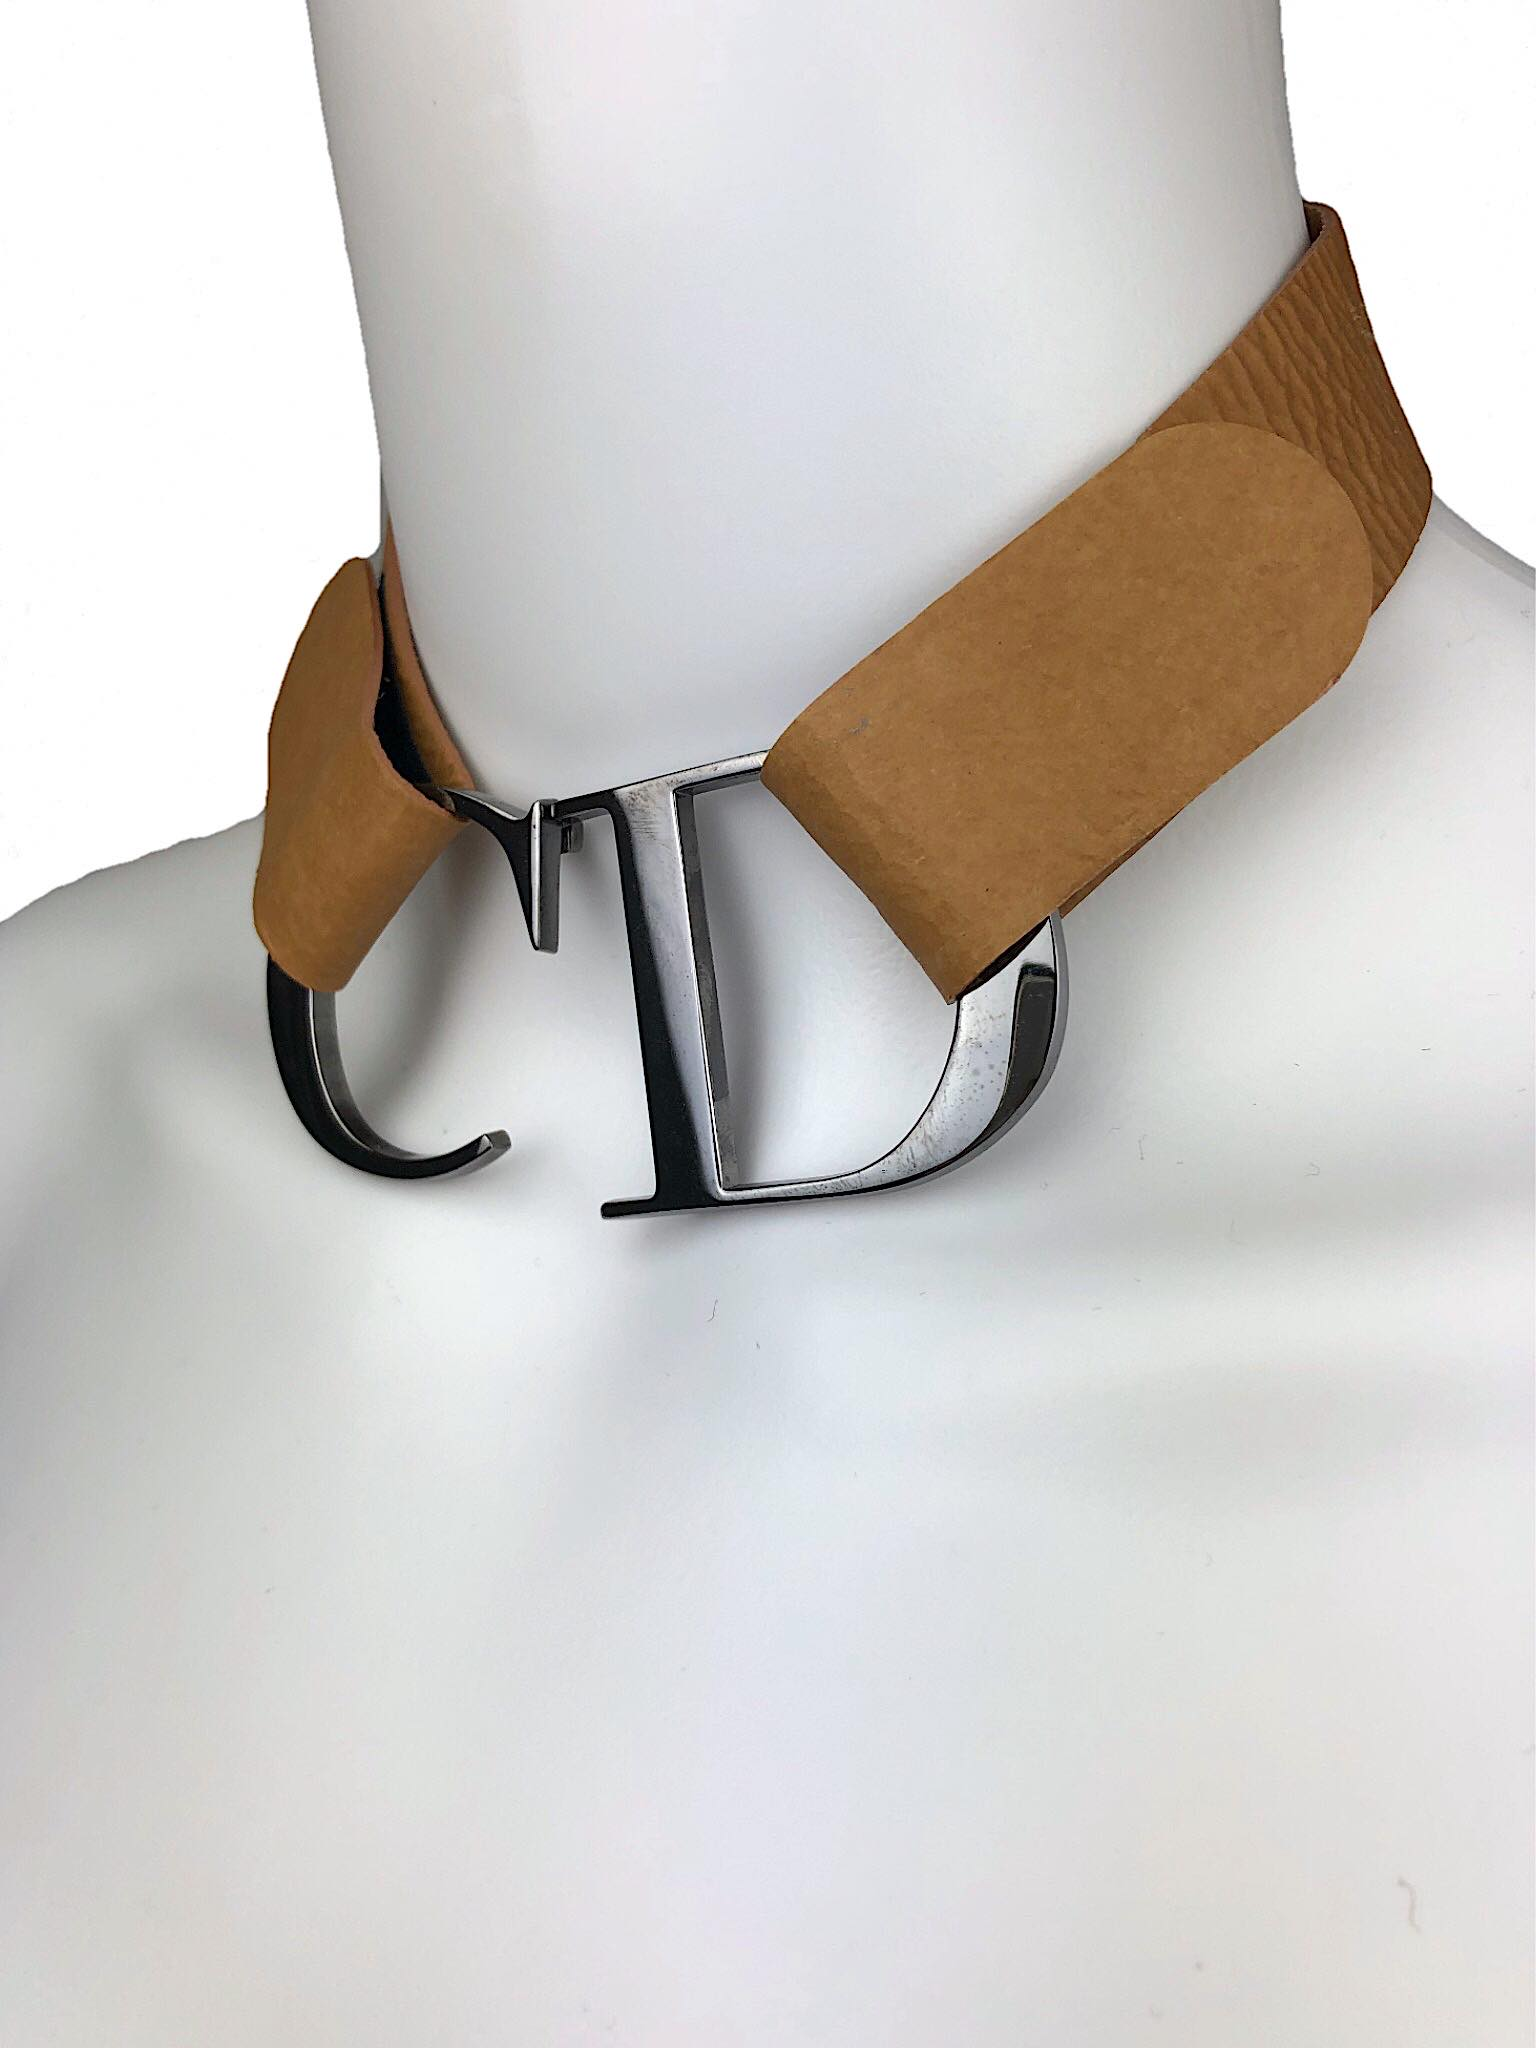 Christian Dior CD choker from Spring 2000 collection